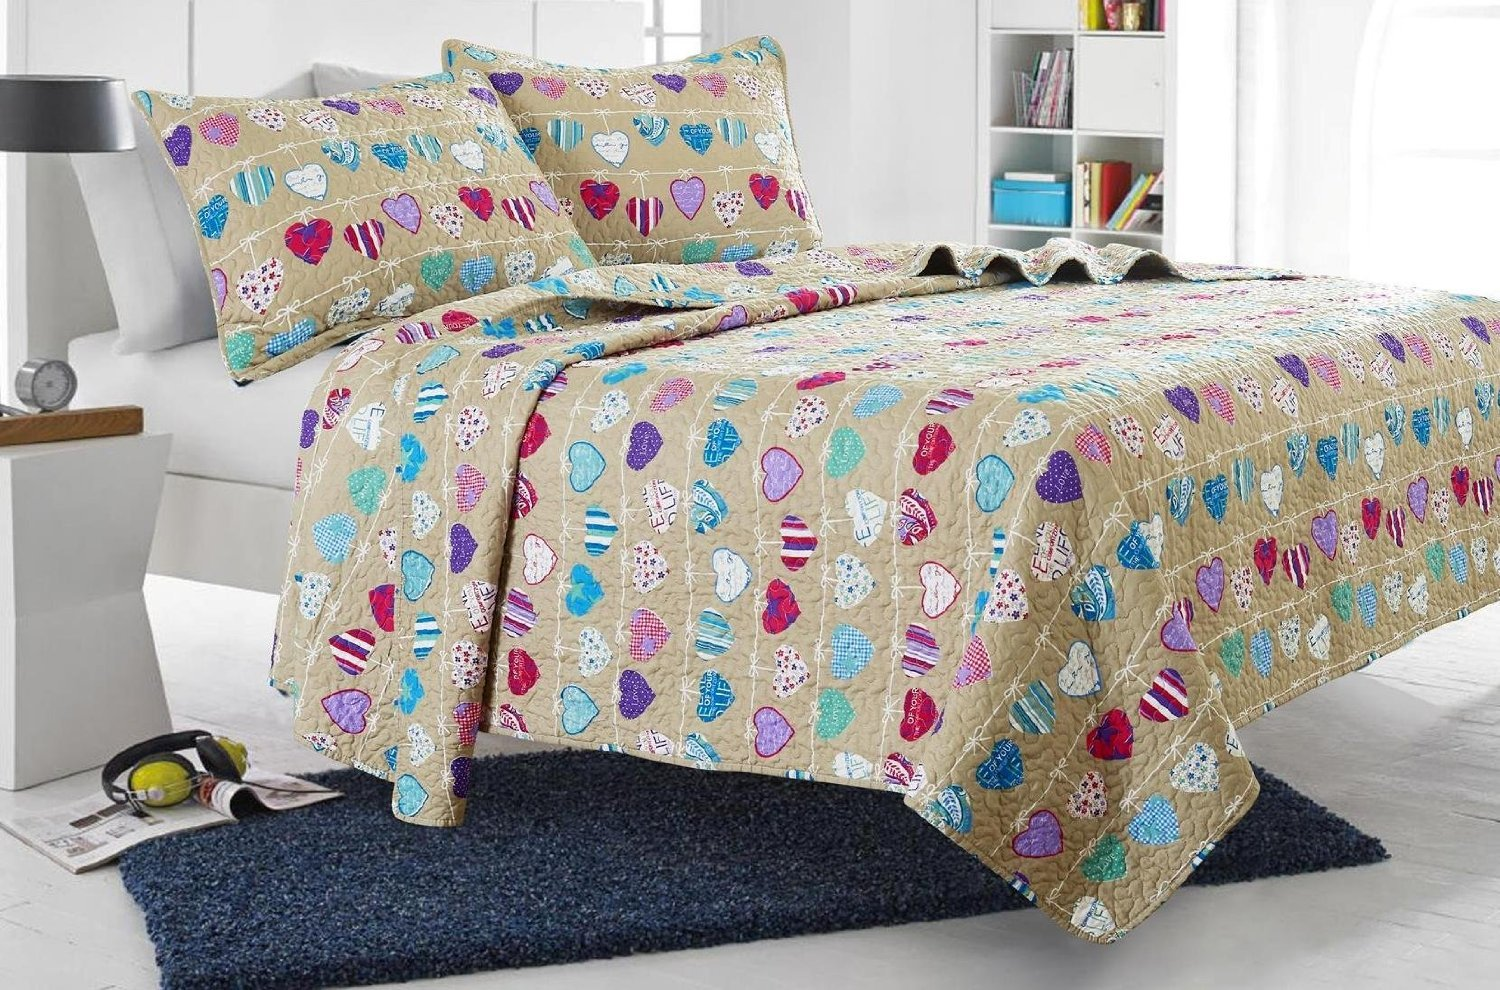 Web Linens Inc 3pc Beige Love Hearts Quilt Set - Style # 1019 - Full/Queen - Cherry Hill Collection